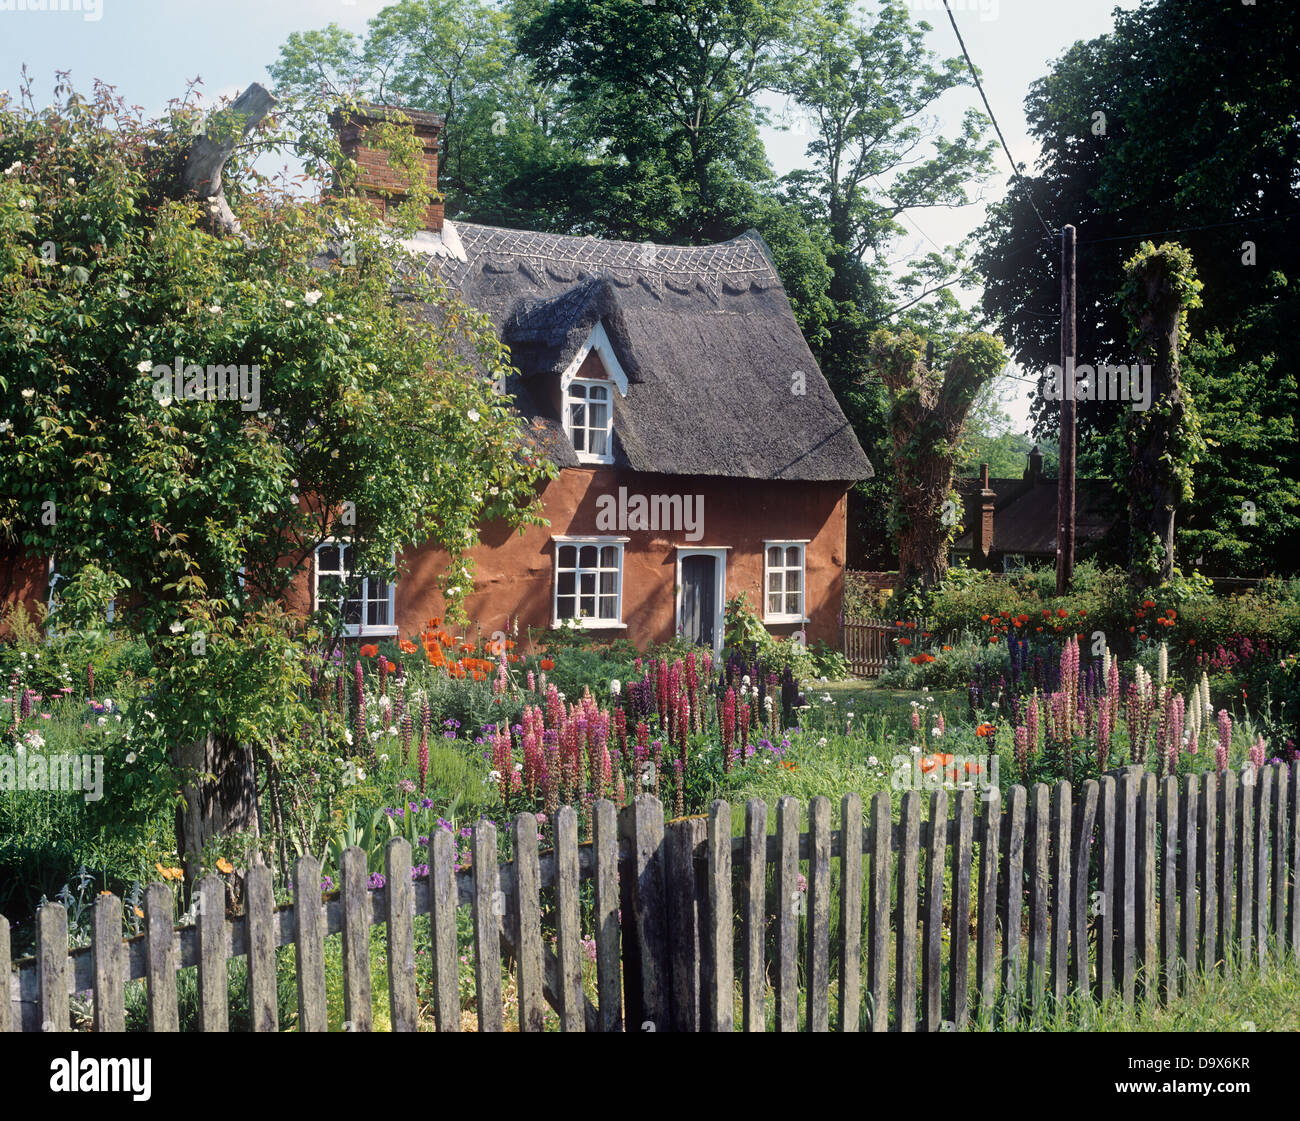 Stock Photo   Wooden Picket Fence Around Garden With Pink Lupins In Front  Of Thatched English Country Cottage